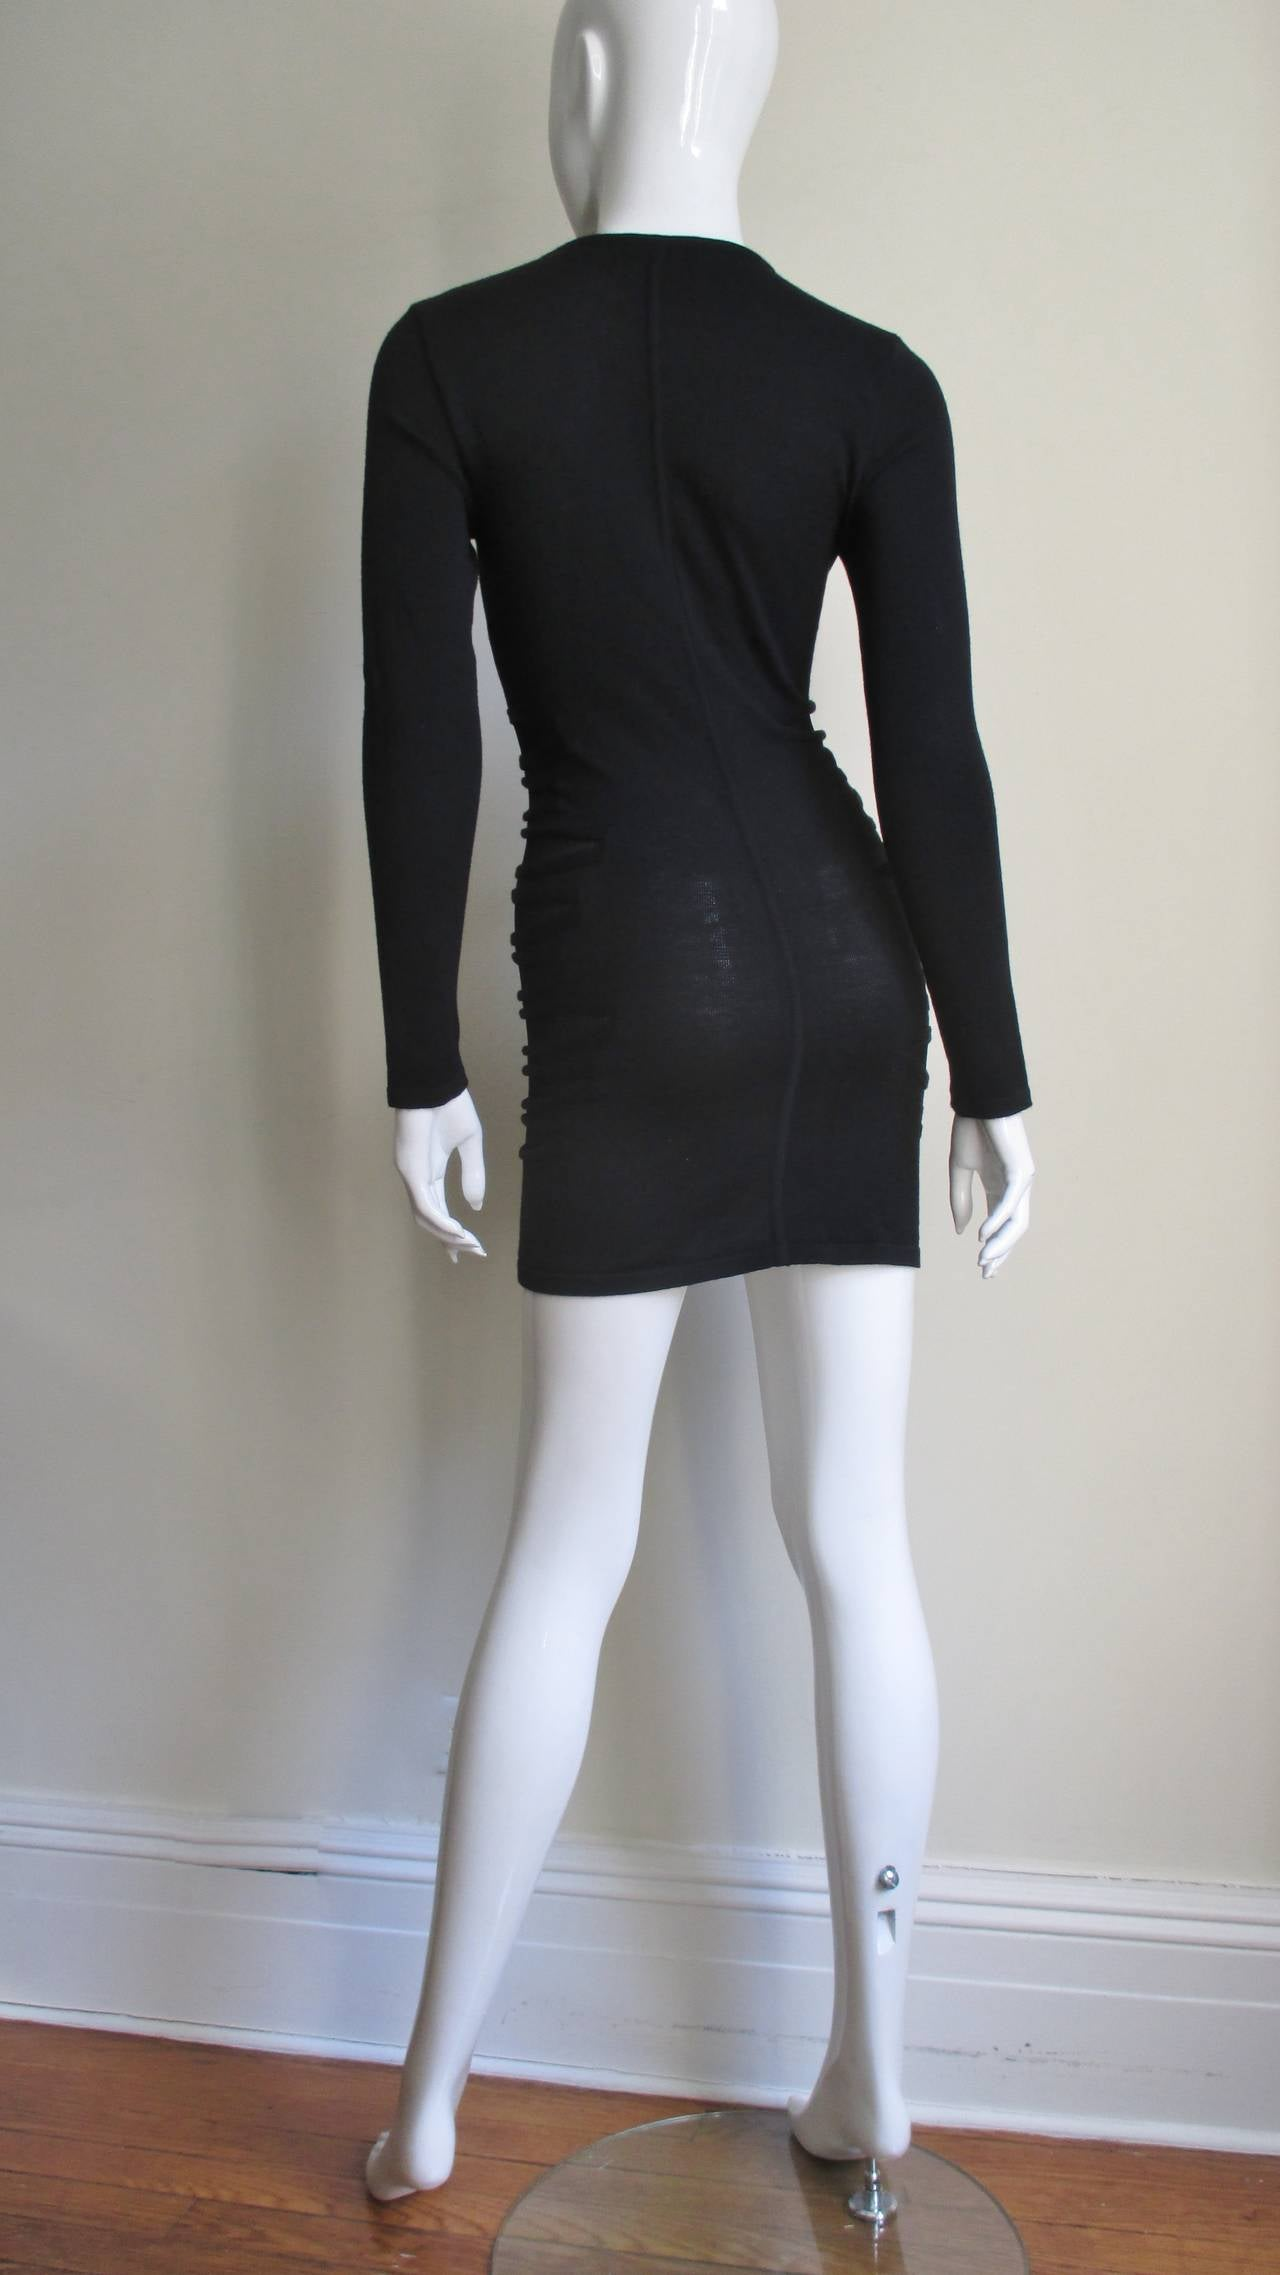 Versace Knit Dress With Mesh Cut-outs For Sale 4